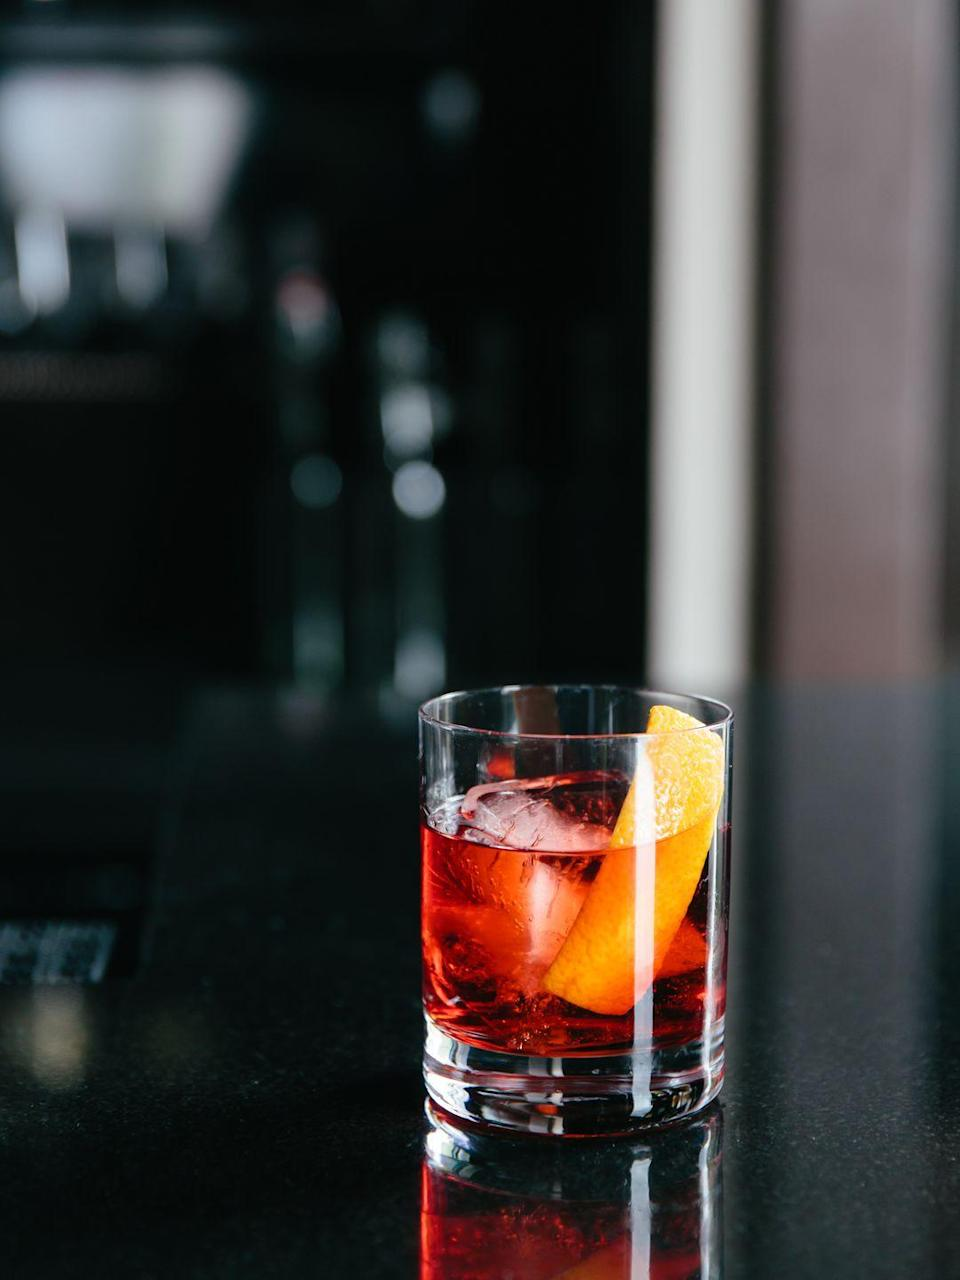 "<p><strong>Ingredients</strong></p><p>1 oz Campari<br>1 oz 1757 Vermouth di Torino Rosso<br>1 oz Bulldog Gin</p><p><strong>Instructions</strong></p><p>Build over ice in a rocks glass. Stir for 15 seconds. Garnish with an orange peel or slice.</p><p><strong>More: </strong><a href=""https://www.townandcountrymag.com/leisure/drinks/g2427/negroni-cocktail-recipes/"" rel=""nofollow noopener"" target=""_blank"" data-ylk=""slk:10 Variations on the Negroni to Get You Through Cocktail Hour This Summer"" class=""link rapid-noclick-resp"">10 Variations on the Negroni to Get You Through Cocktail Hour This Summer</a> </p>"